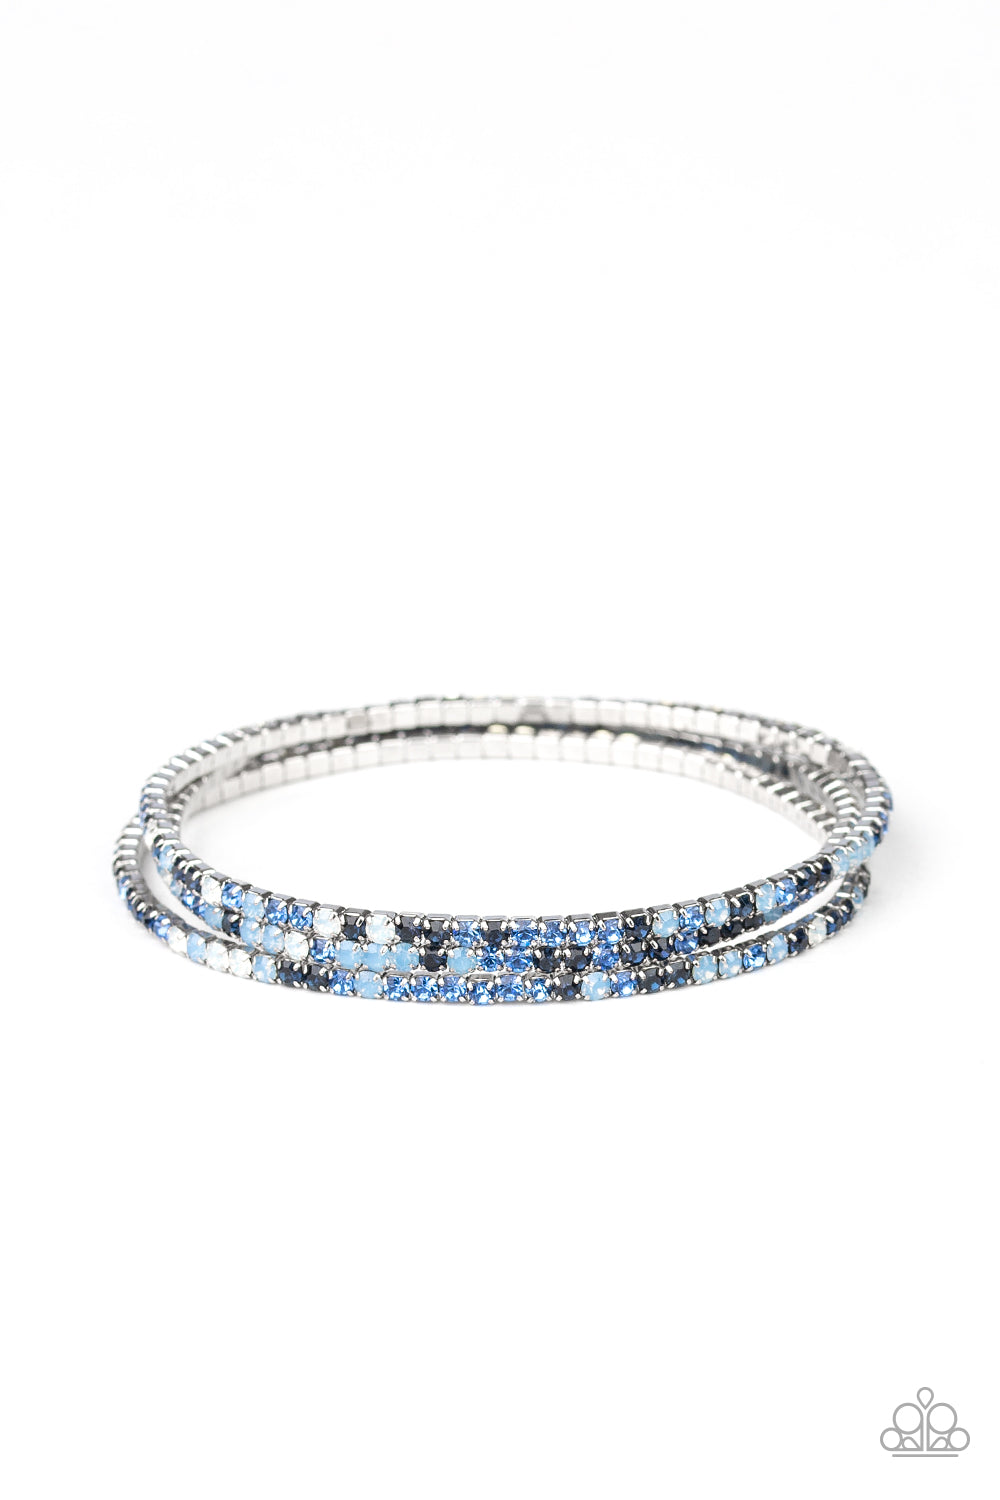 Paparazzi Bracelet - Sugar and ICE - Blue